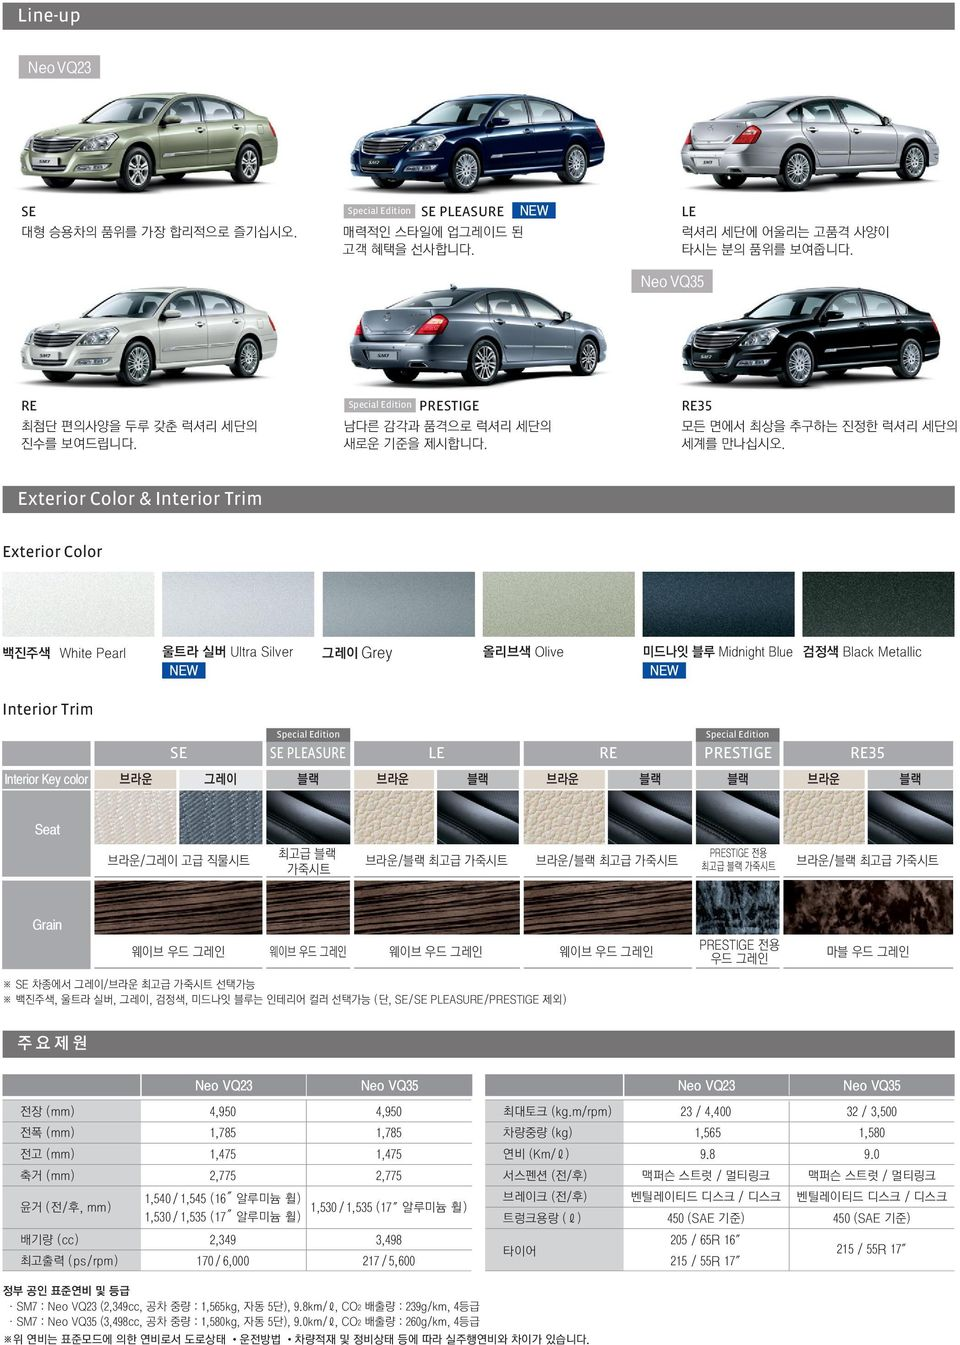 Exterior Color & Interior Trim Exterior Color 울트라 실버 Ultra Silver NEW 백진주색 White Pearl 올리브색 Olive 그레이 Grey 미드나잇 블루 Midnight Blue 검정색 Black Metallic NEW Interior Trim SE Interior Key color SE PLEASURE